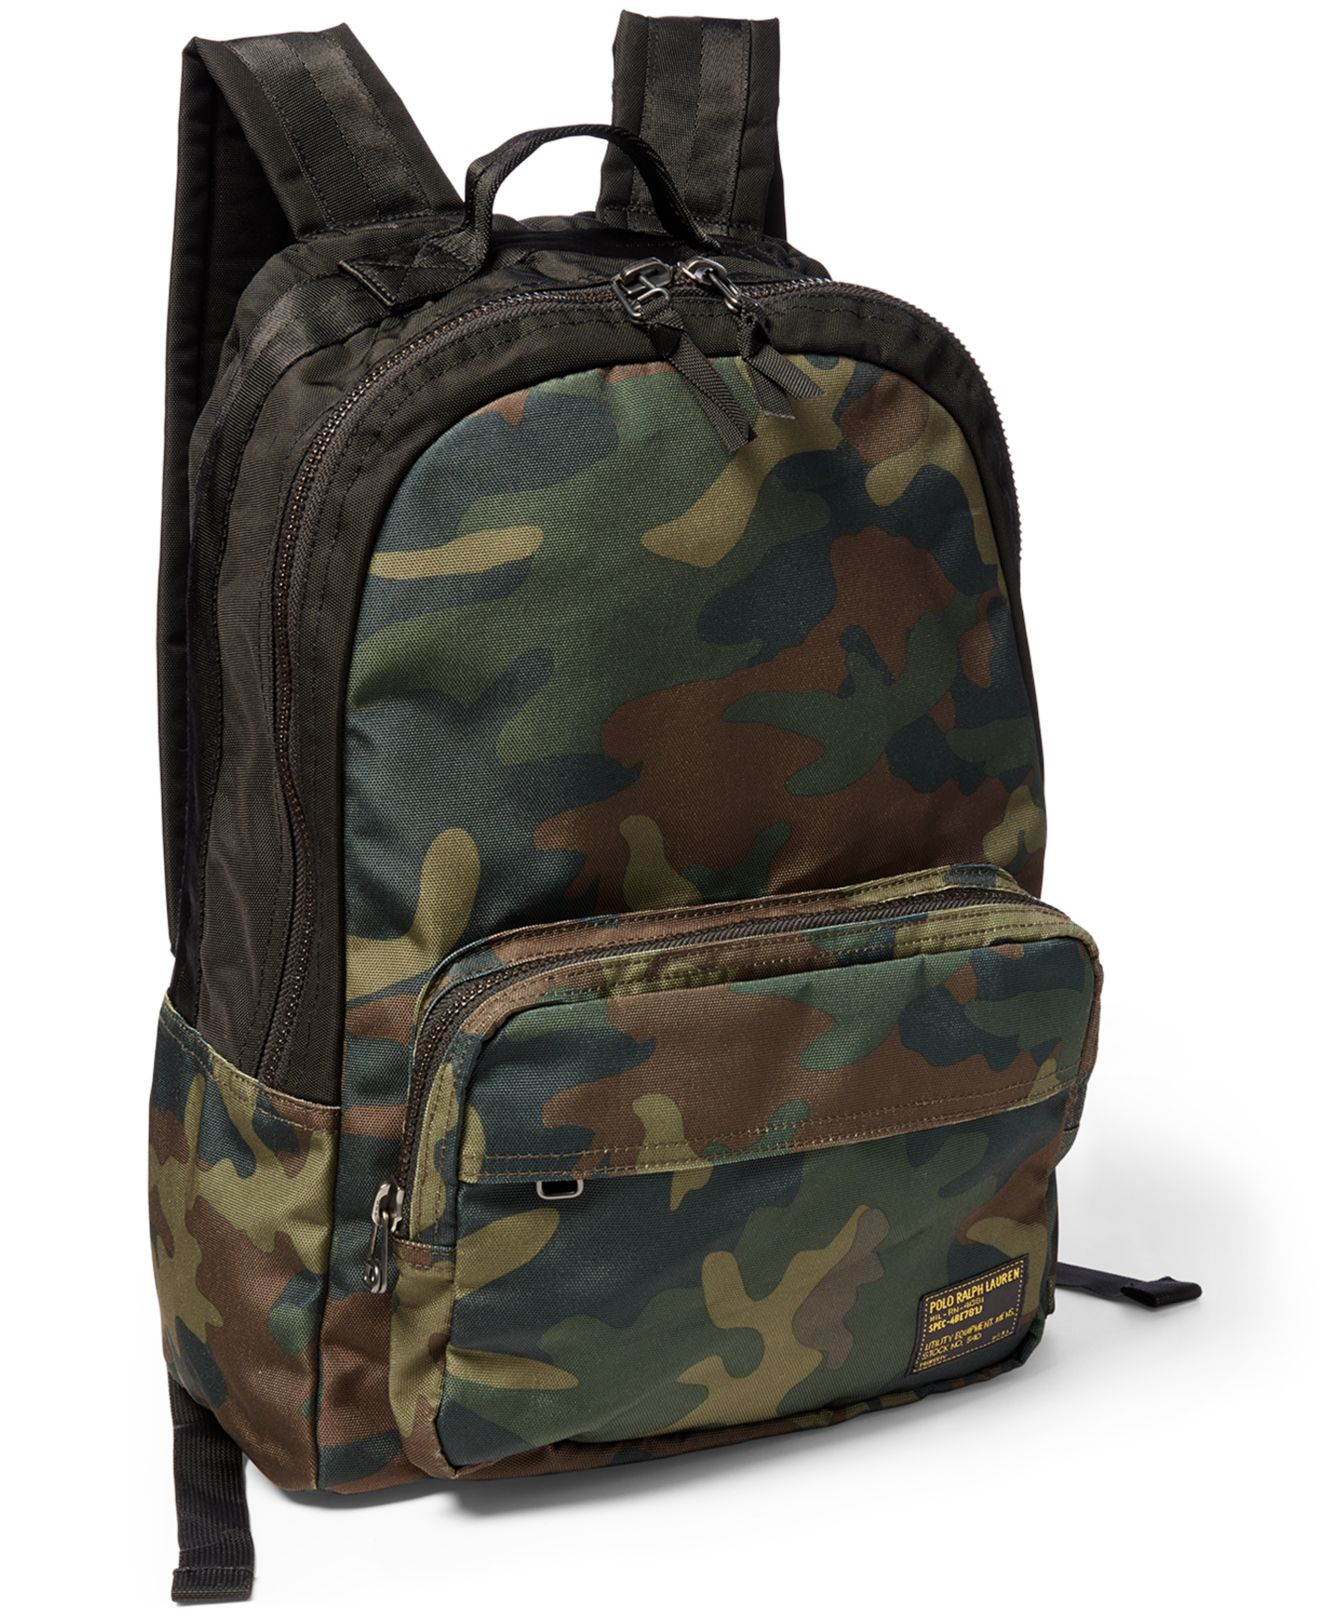 Lyst - Polo Ralph Lauren Camo-print Military Backpack in Green for Men 621495c497015